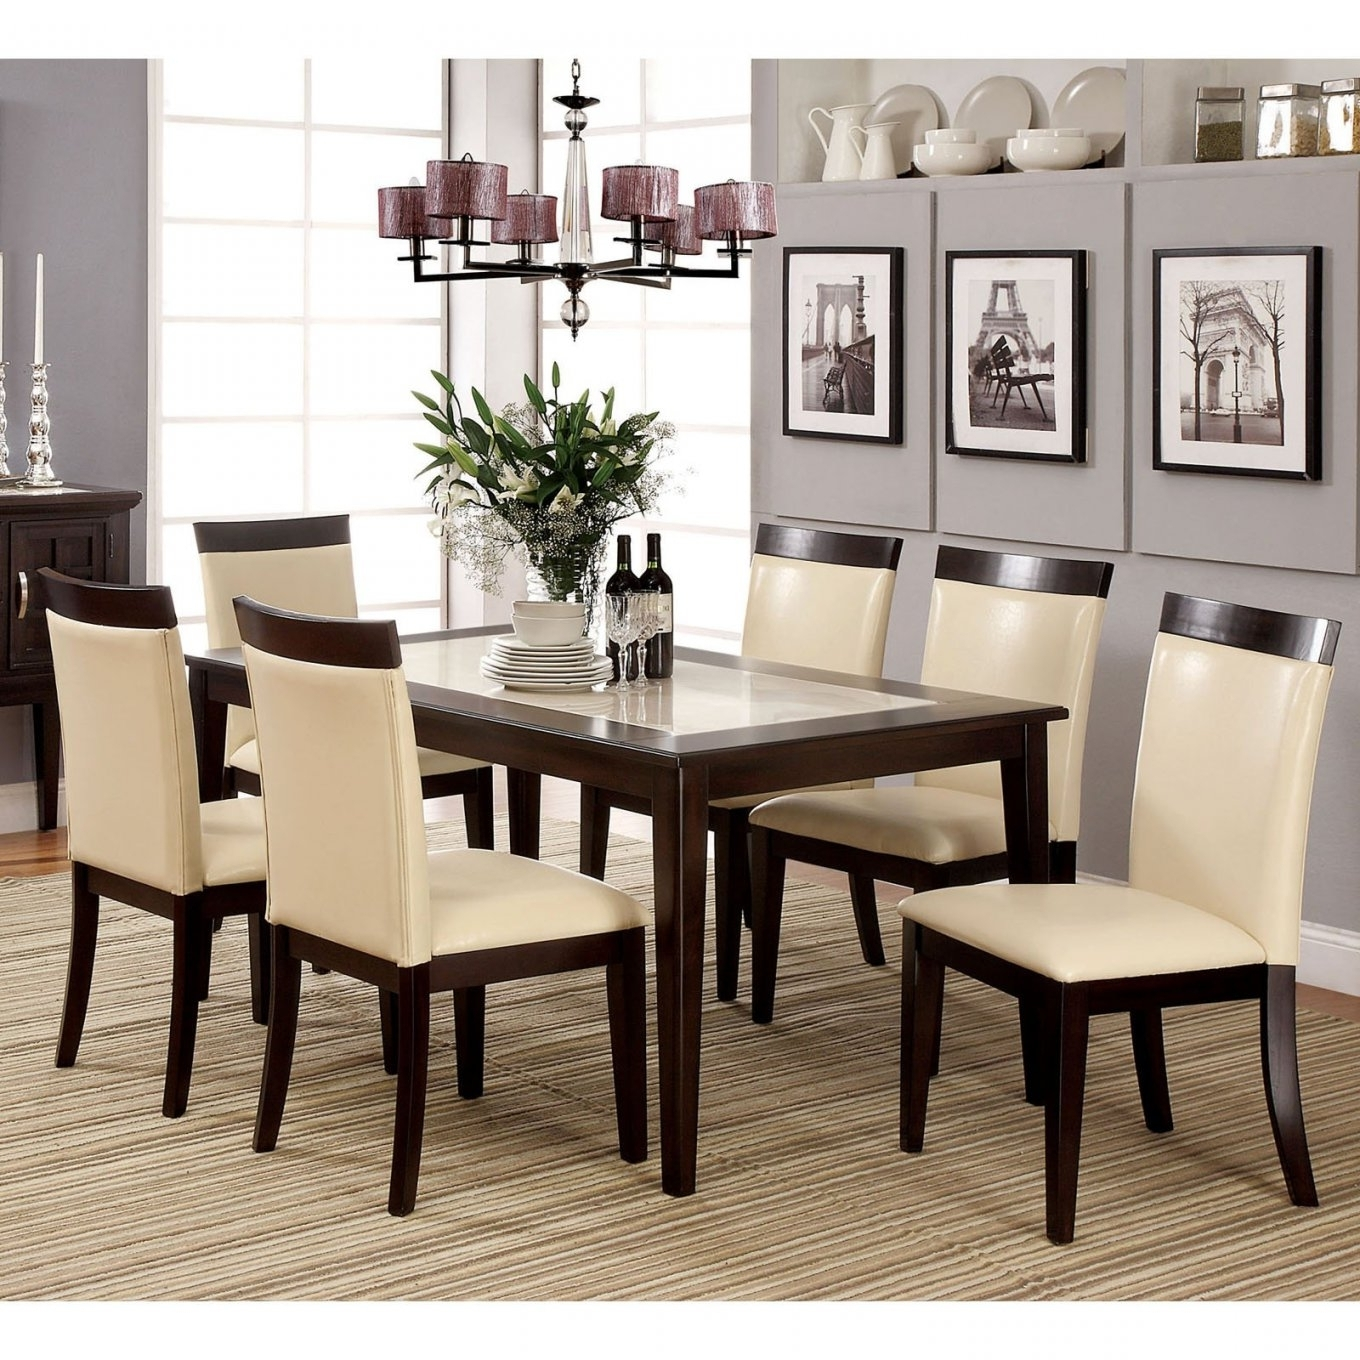 Marble Dining Room Table Set Throughout Recent Marble Dining Tables Sets (View 13 of 25)